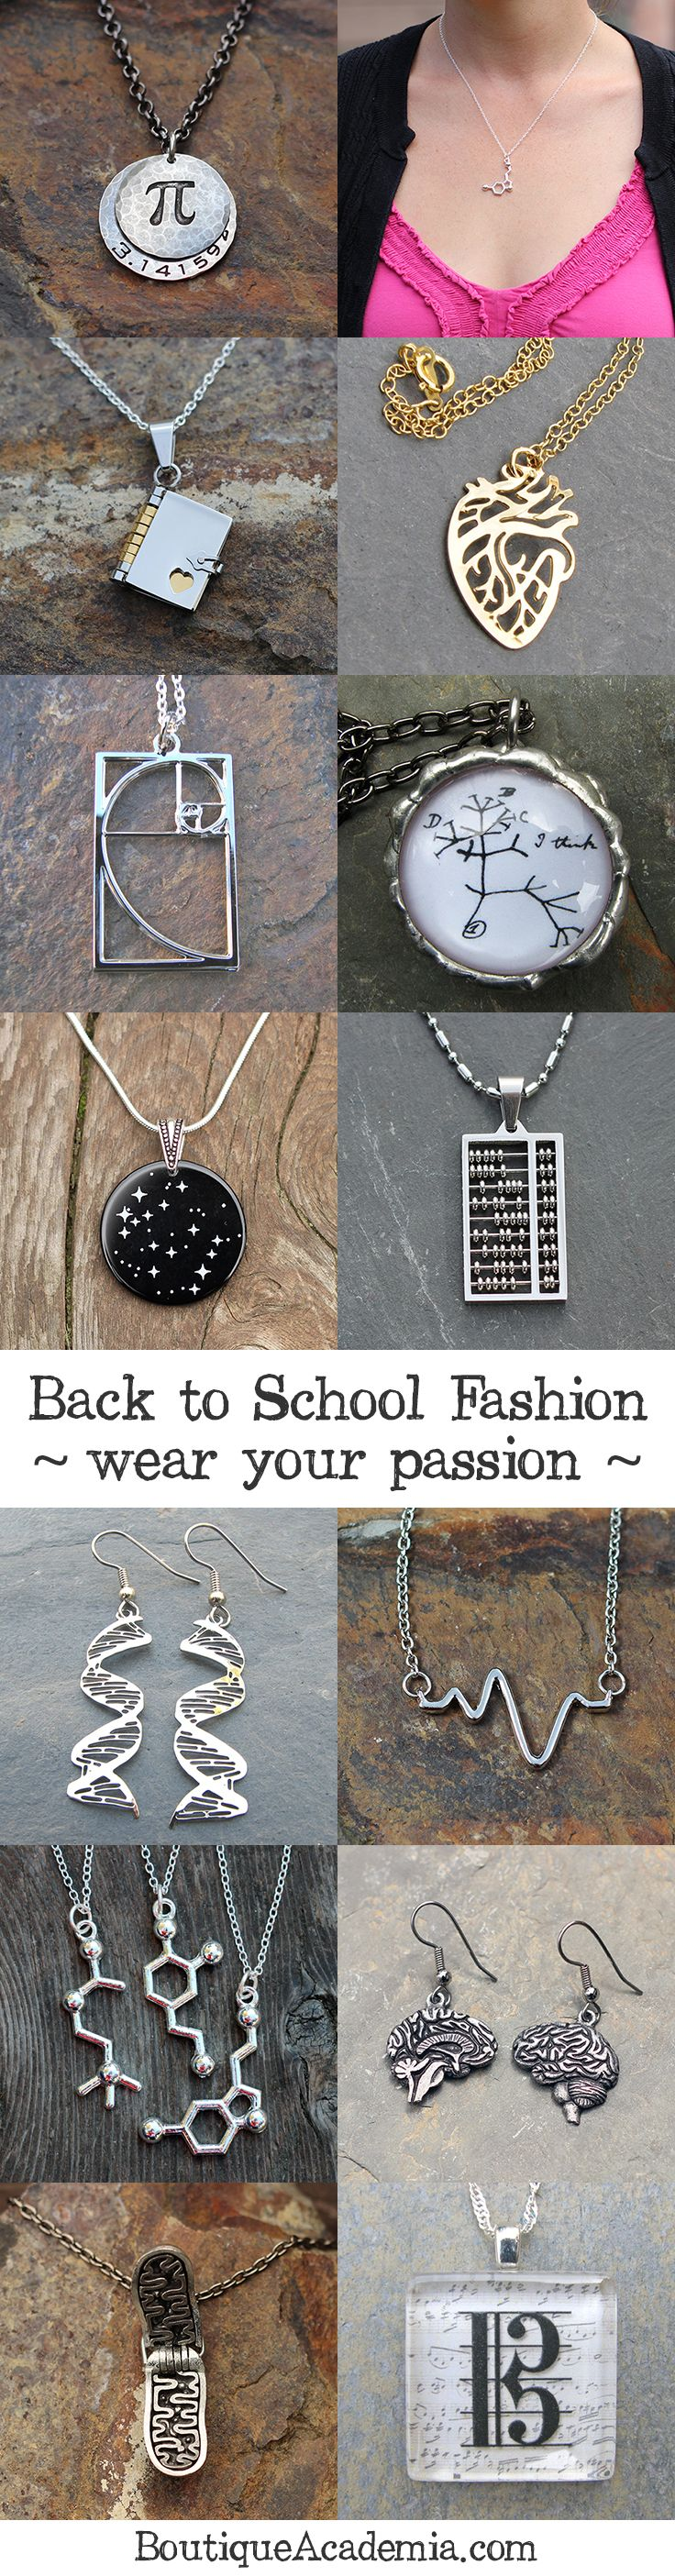 The best kind of Back-to-School Fashion!  ~KJH~ does not have to be only for school!